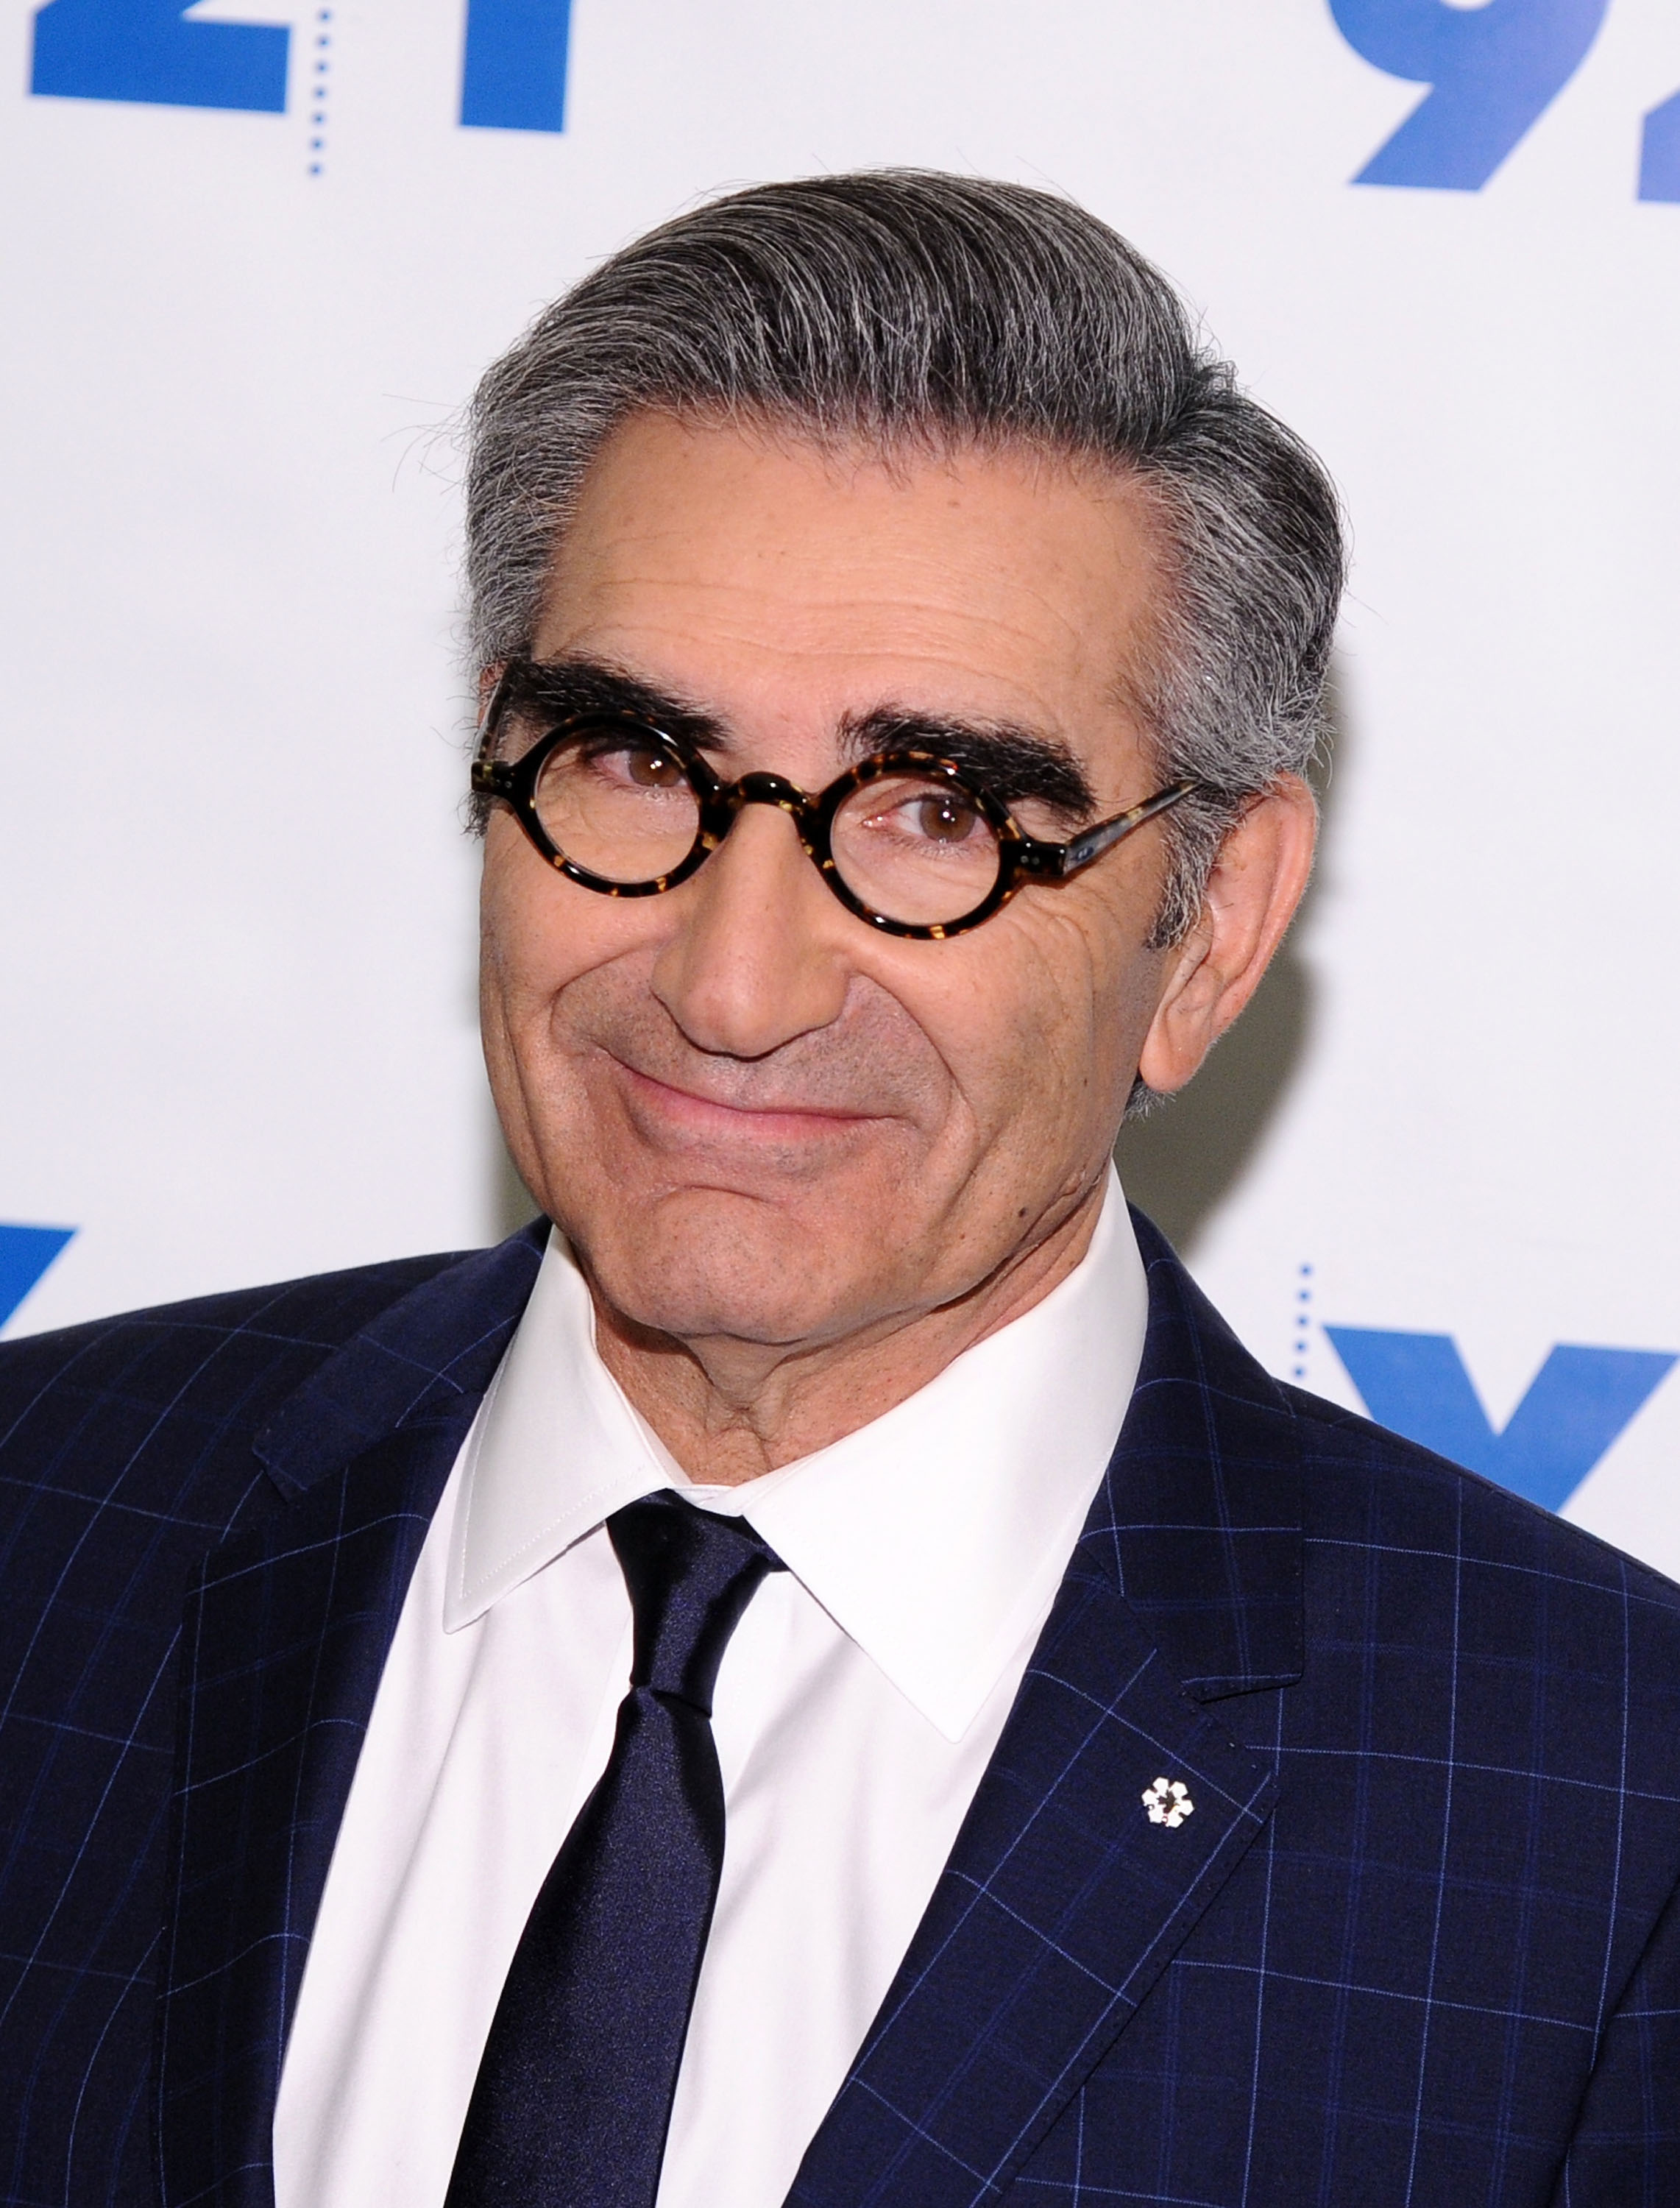 Eugene Levy attends 92nd Street Y Presents  Schitt's Creek  on March 14, 2016 in New York City.